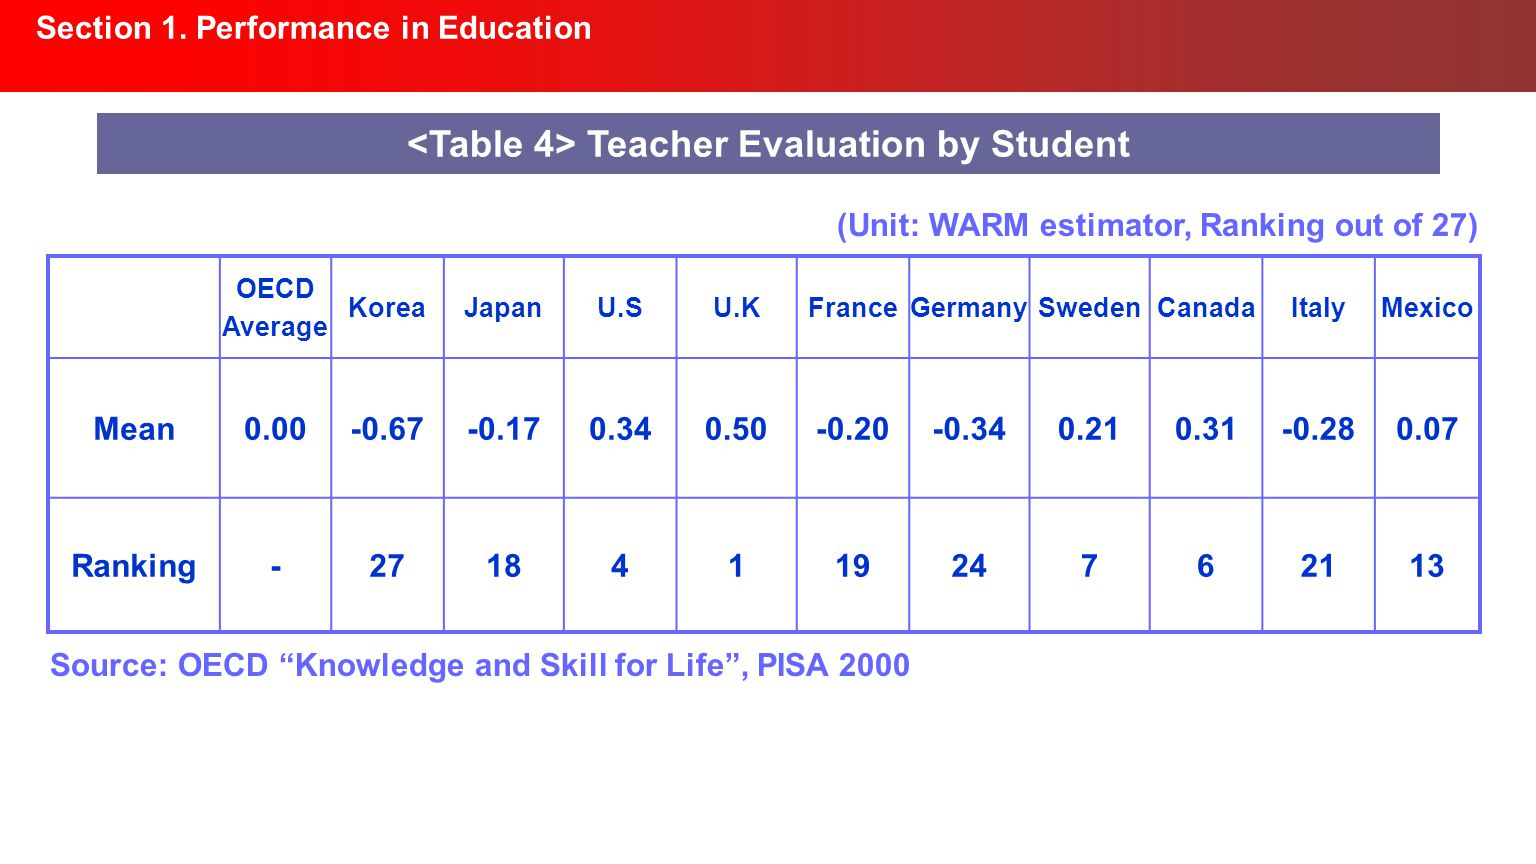 Section 1. Performance in Education Teacher Evaluation by Student OECD Average KoreaJapanU.SU.KFranceGermanySwedenCanadaItalyMexico Mean0.00-0.67-0.17